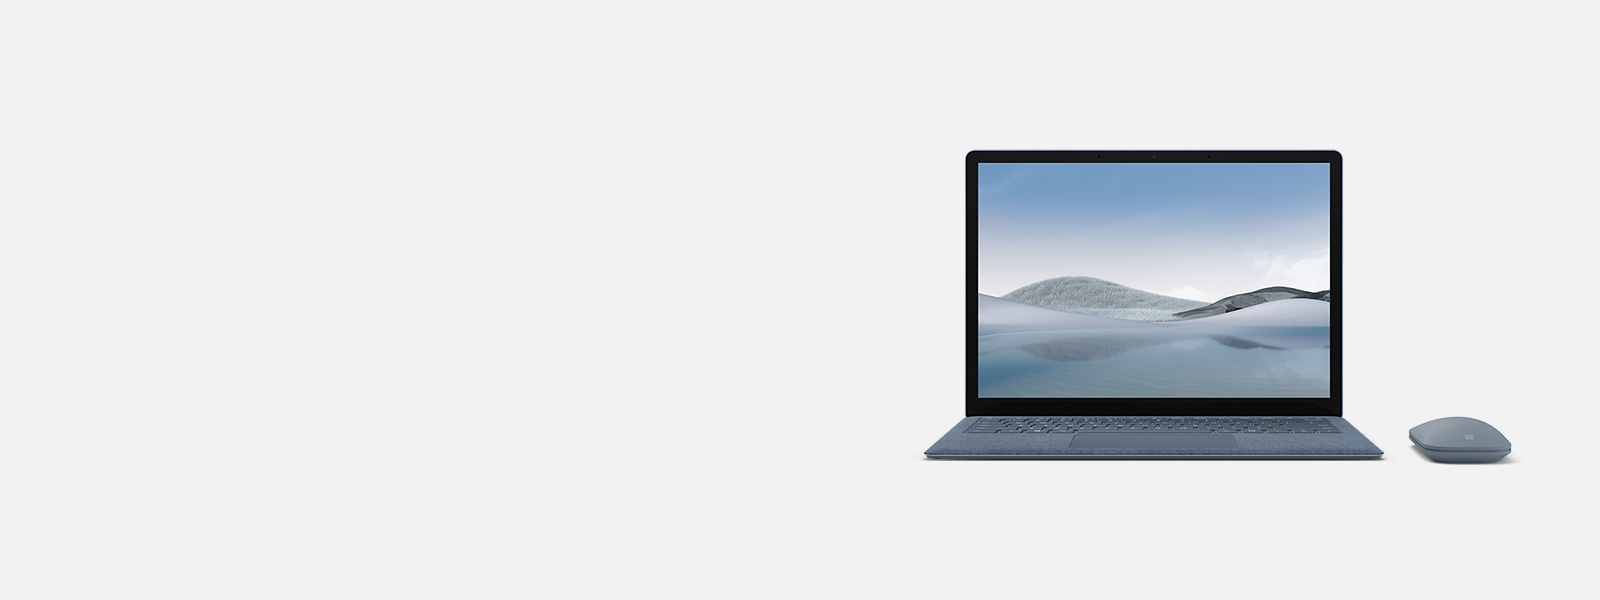 Surface Laptop 4 鼠标套餐